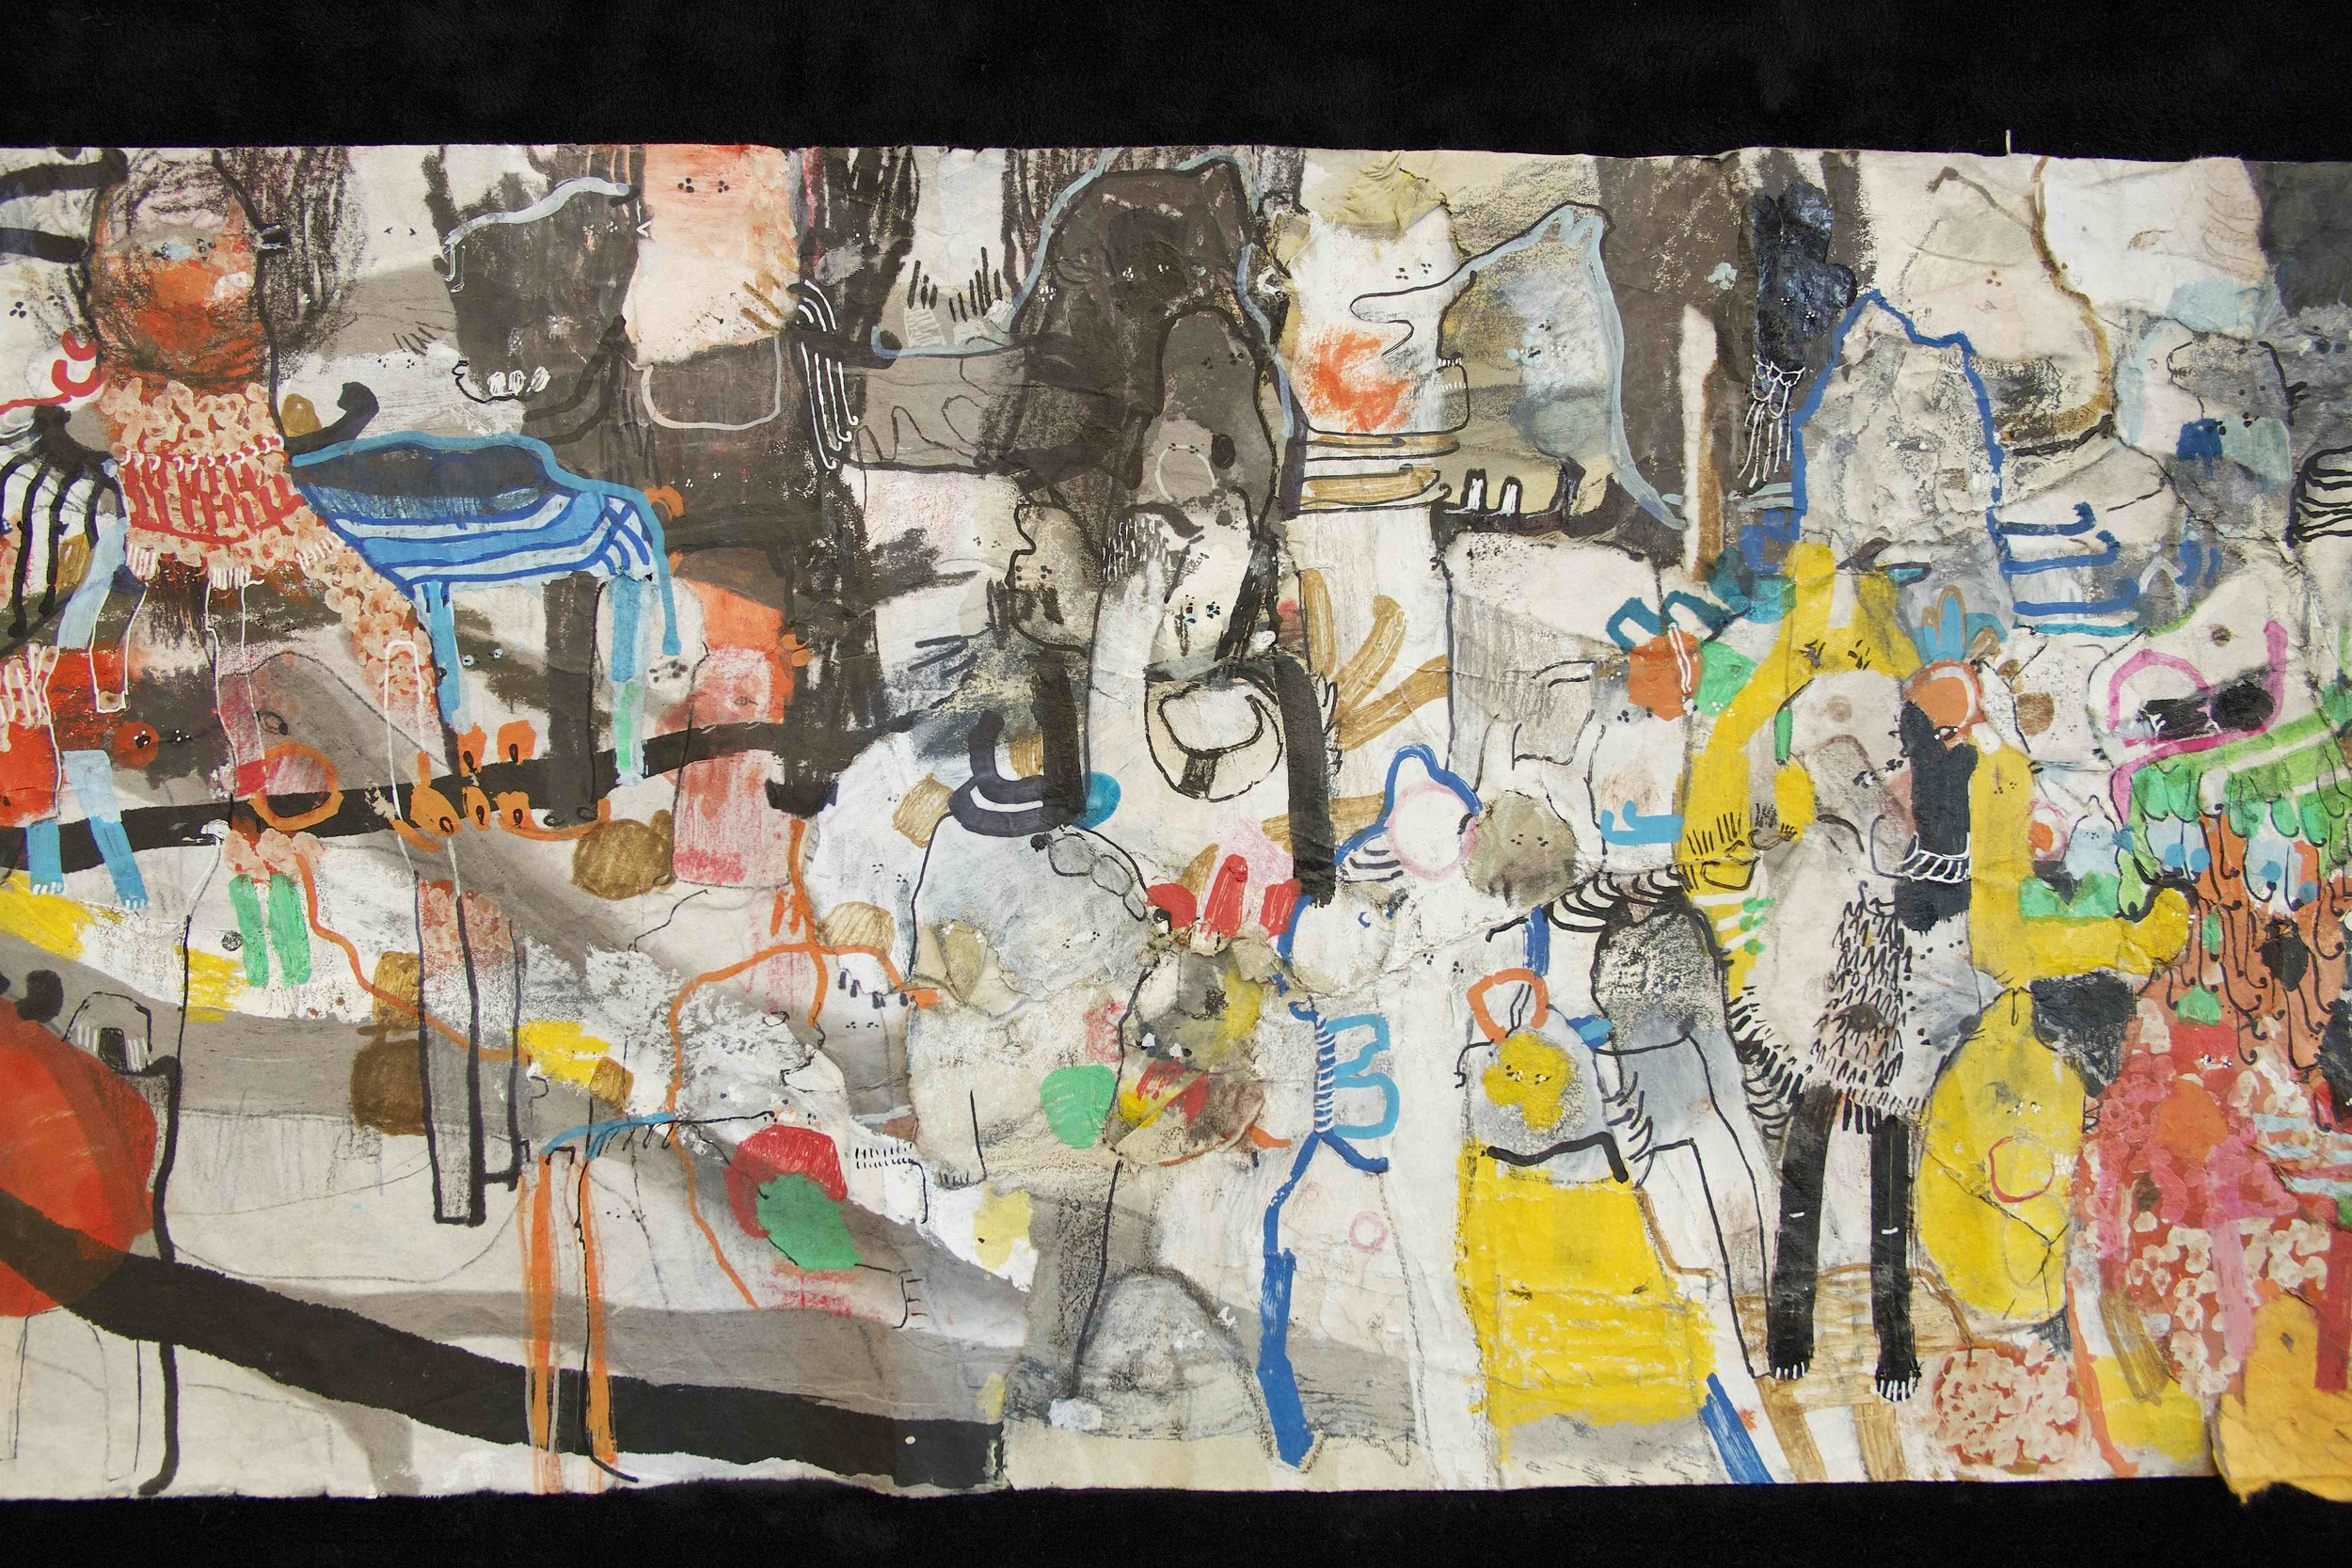 """[Detail no 20]  """"The Wind atop The Wood -Winds of Mount Meru Tangling Threads of Rainbow atop the Wood -Scroll 8""""   11 inches x 60 feet  ink, watercolor, gouache, dye, lost & found paper, crayon and graphite on mulberry paper scroll  2015"""